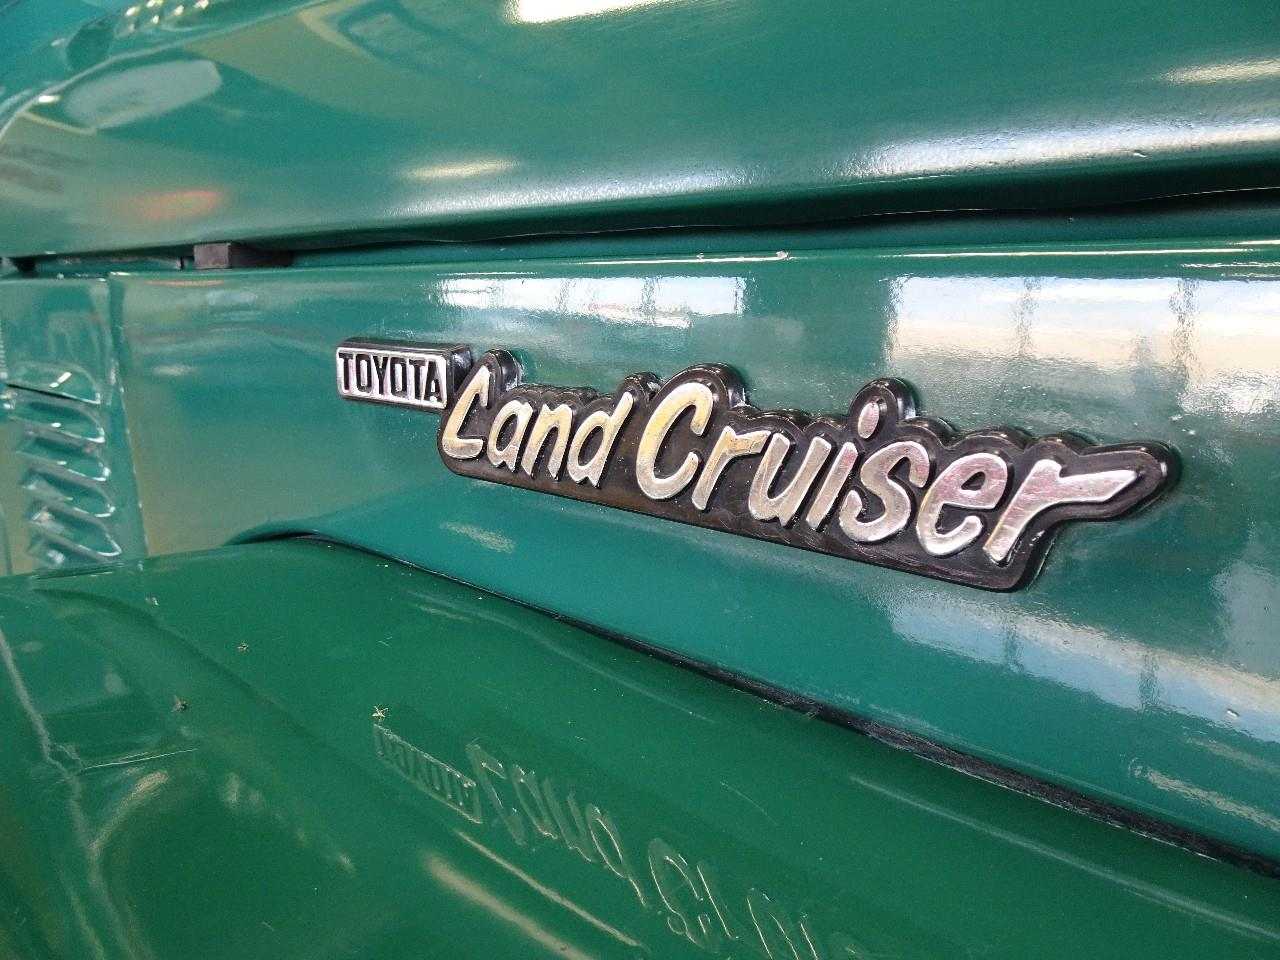 Large Picture of '78 Toyota Land Cruiser FJ40 - $29,997.00 Offered by Thiel Motor Sales Inc. - QCAV